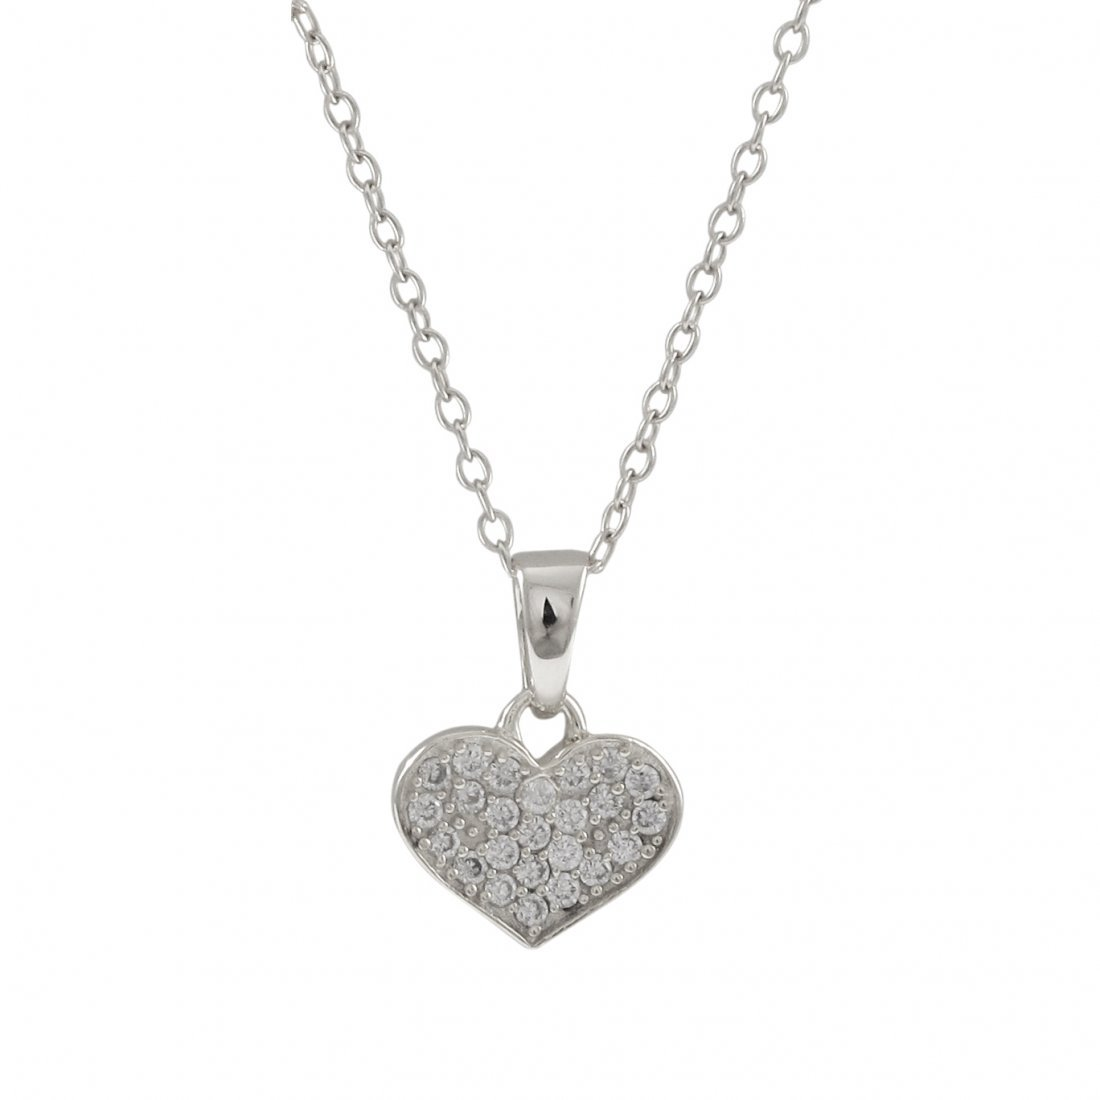 Rhodium Plated Sterling Silver 8x10mm Heart Pendant, Wh